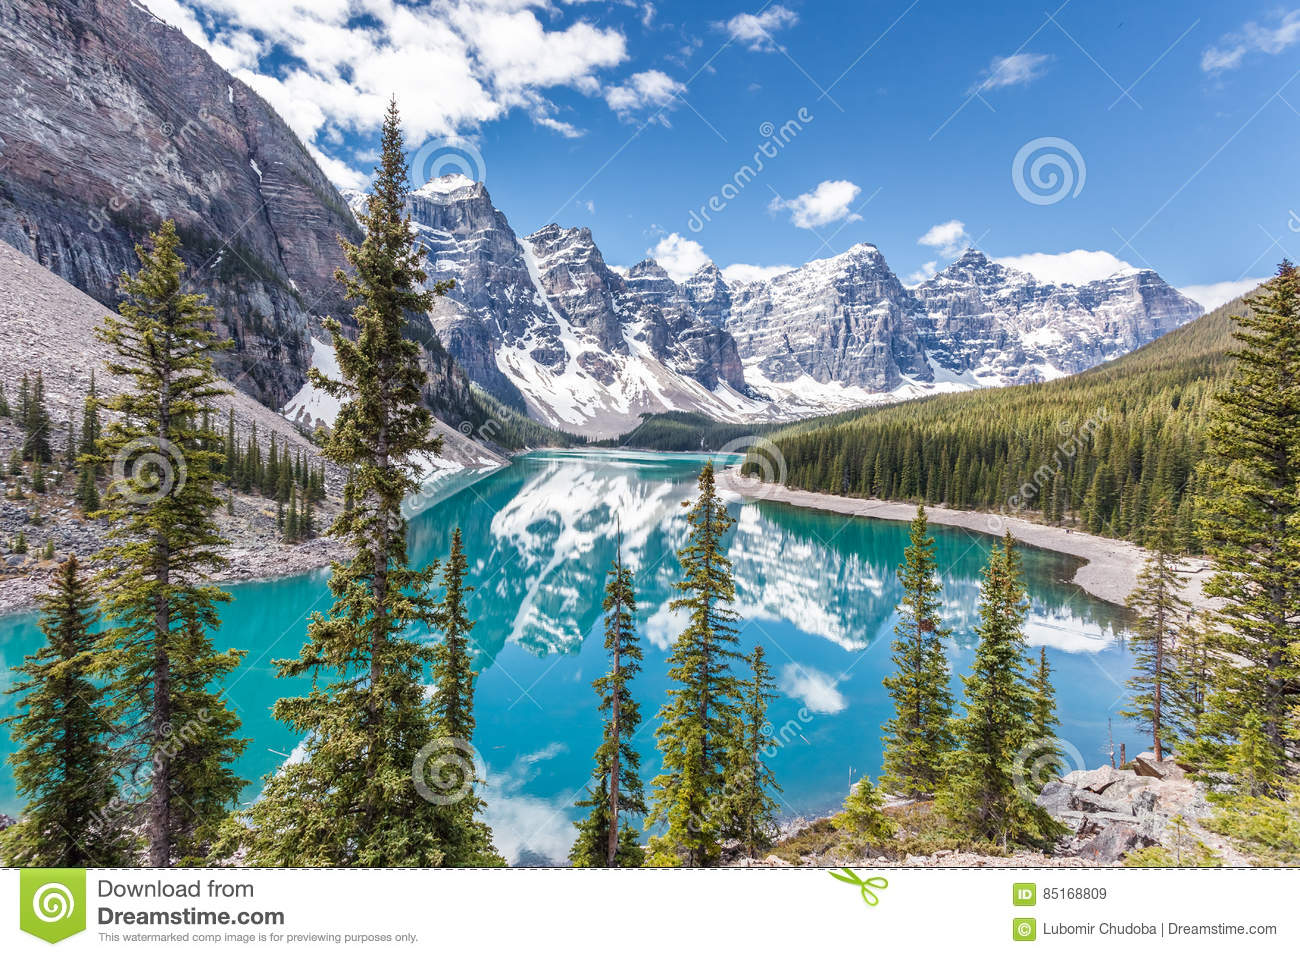 Banff National Park clipart #13, Download drawings